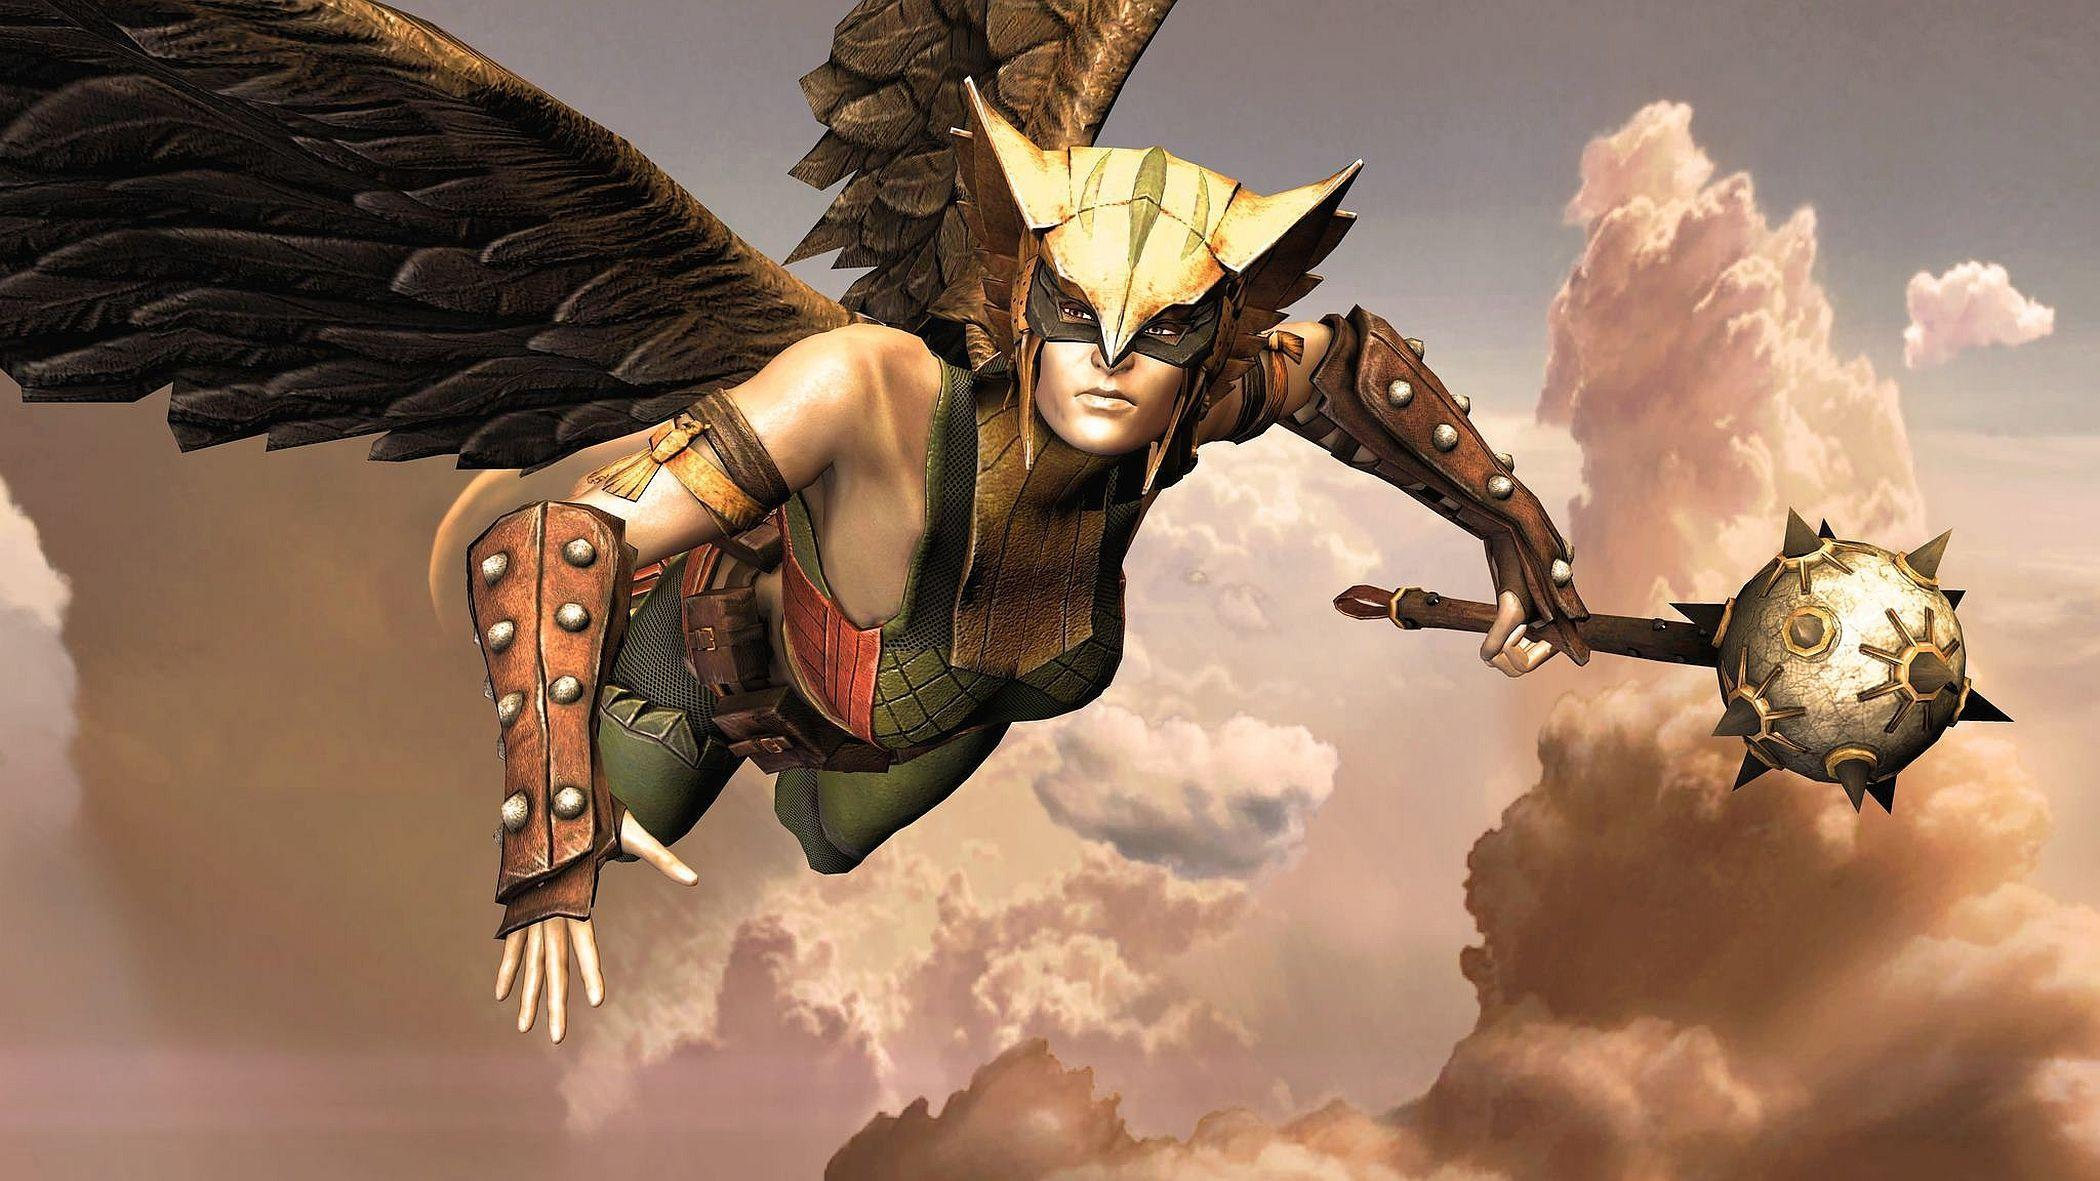 22 Hawkgirl HD Wallpapers | Backgrounds - Wallpaper Abyss